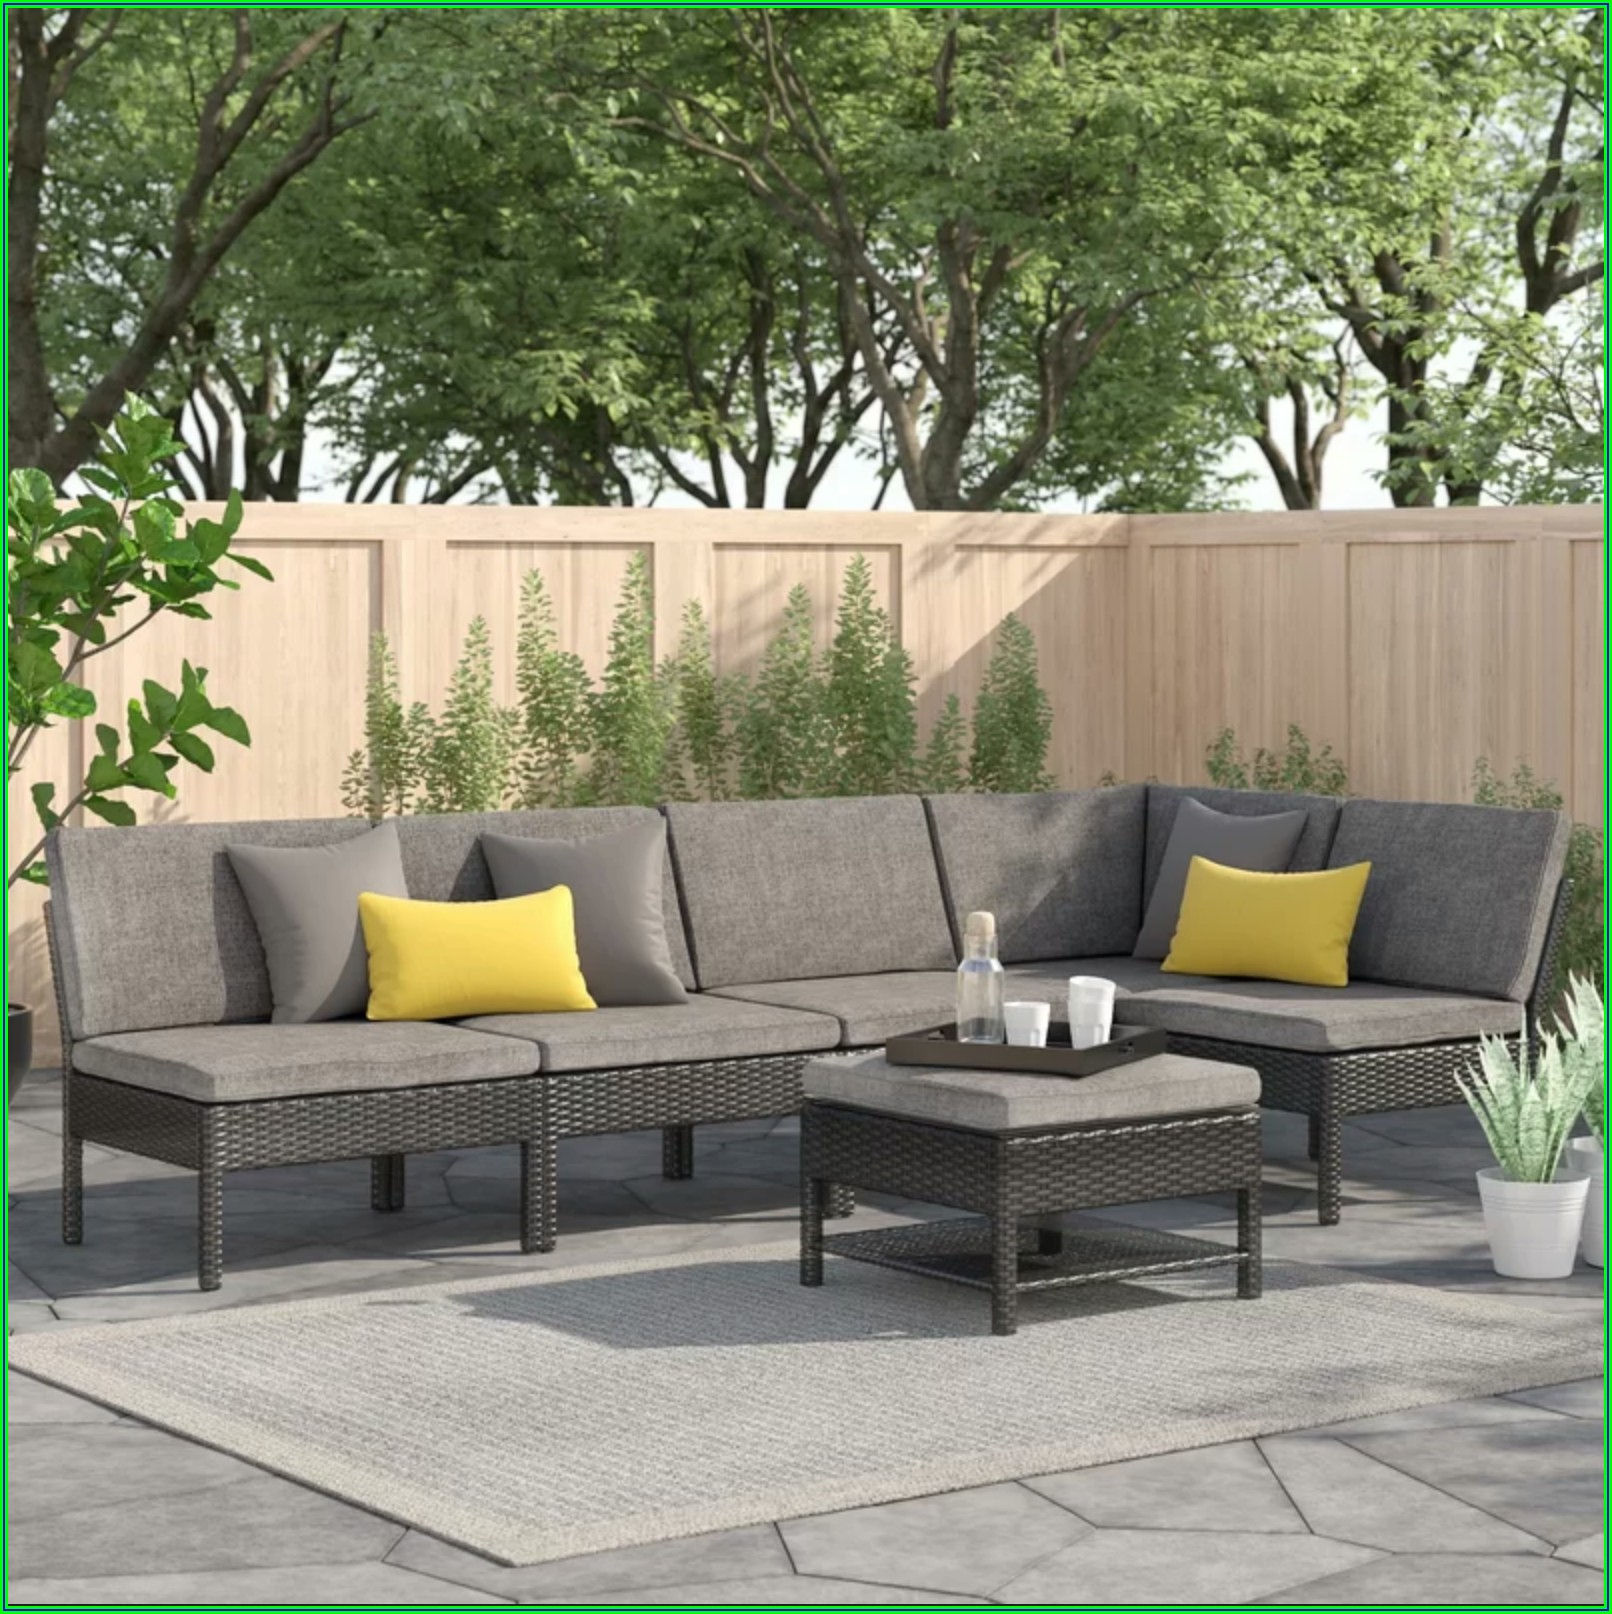 Baner Garden Patio Furniture